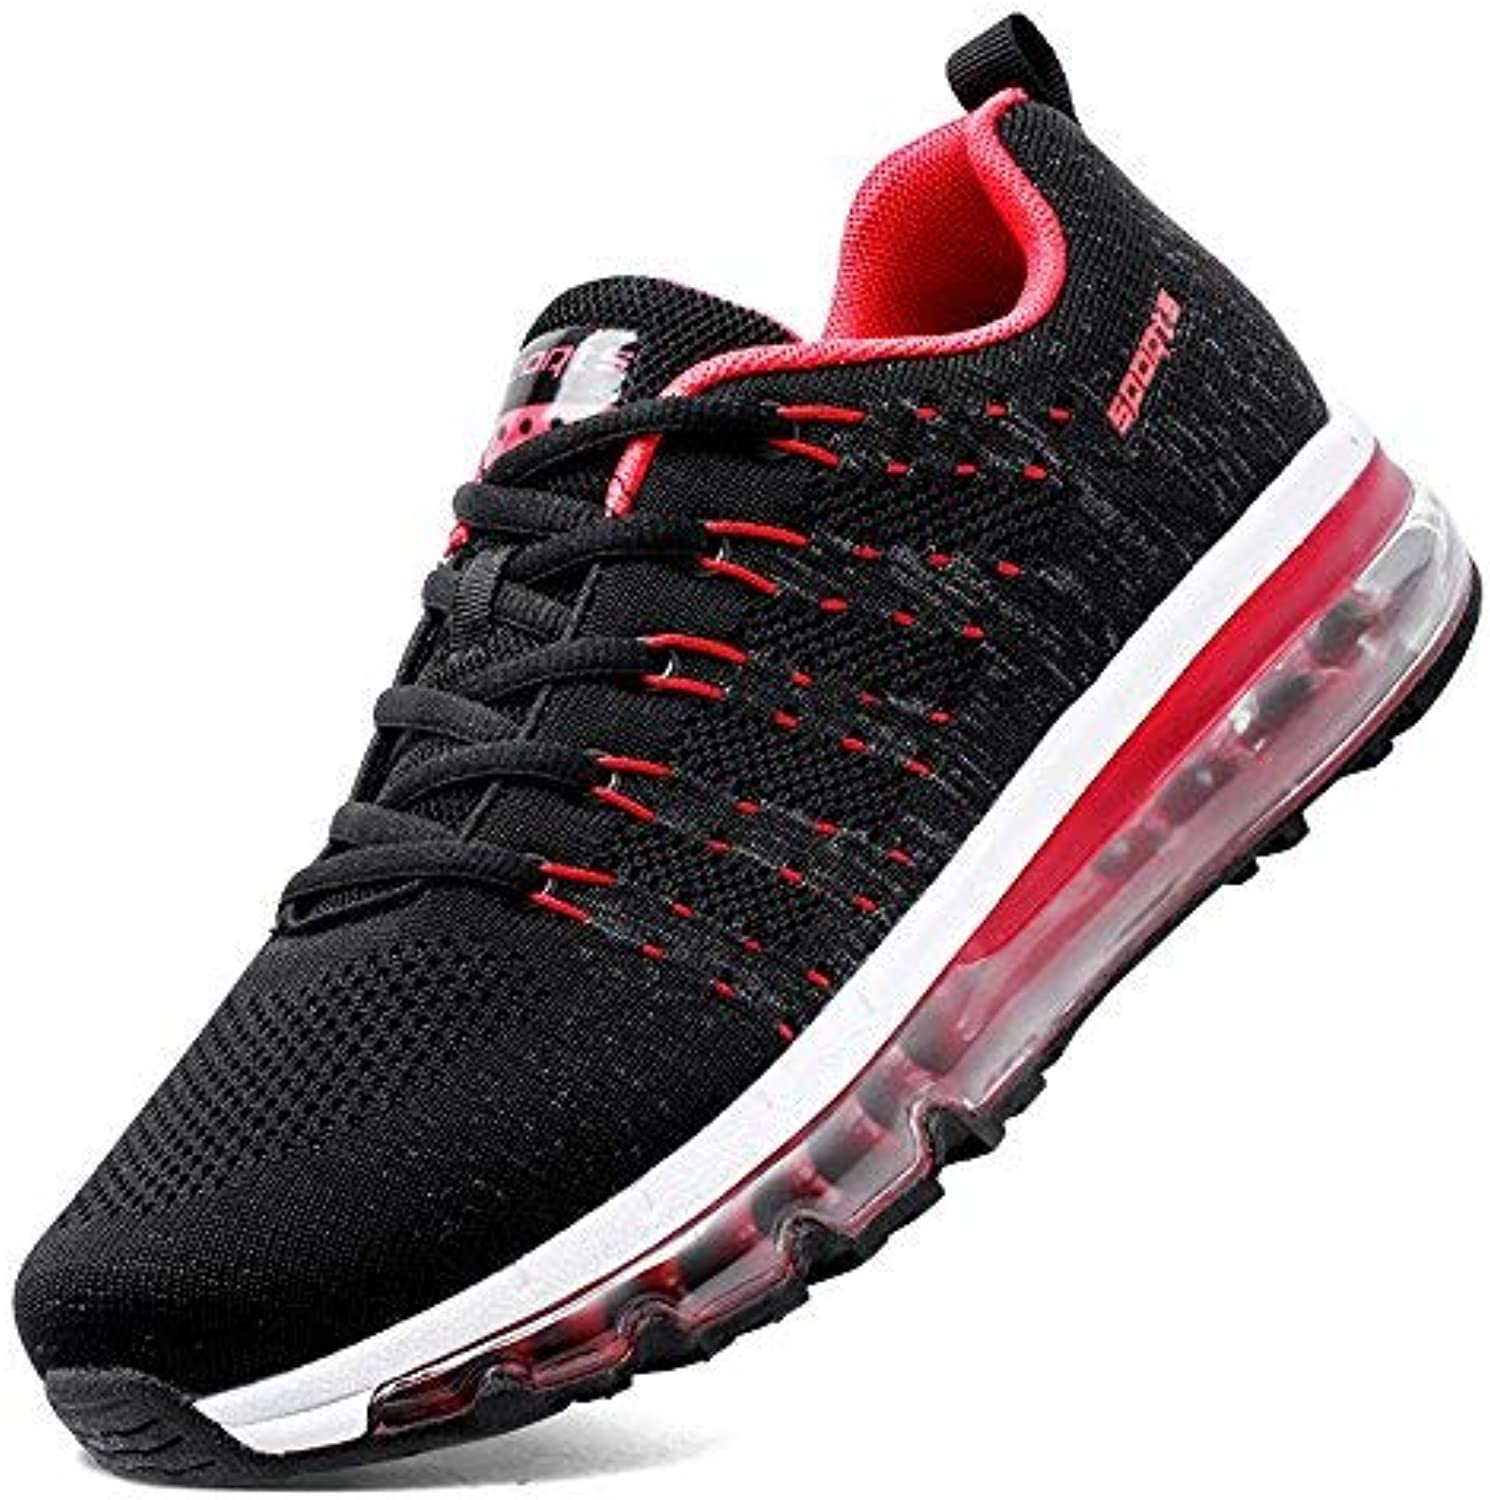 SKDOIUL Youth Boys Sneakers Size 6.5 for 2019 Summer Flyknit Breathable Comfort air Cushion Tennis shoes for Men Gym Workout Jogging Black red Sneakers (8067 red 39)